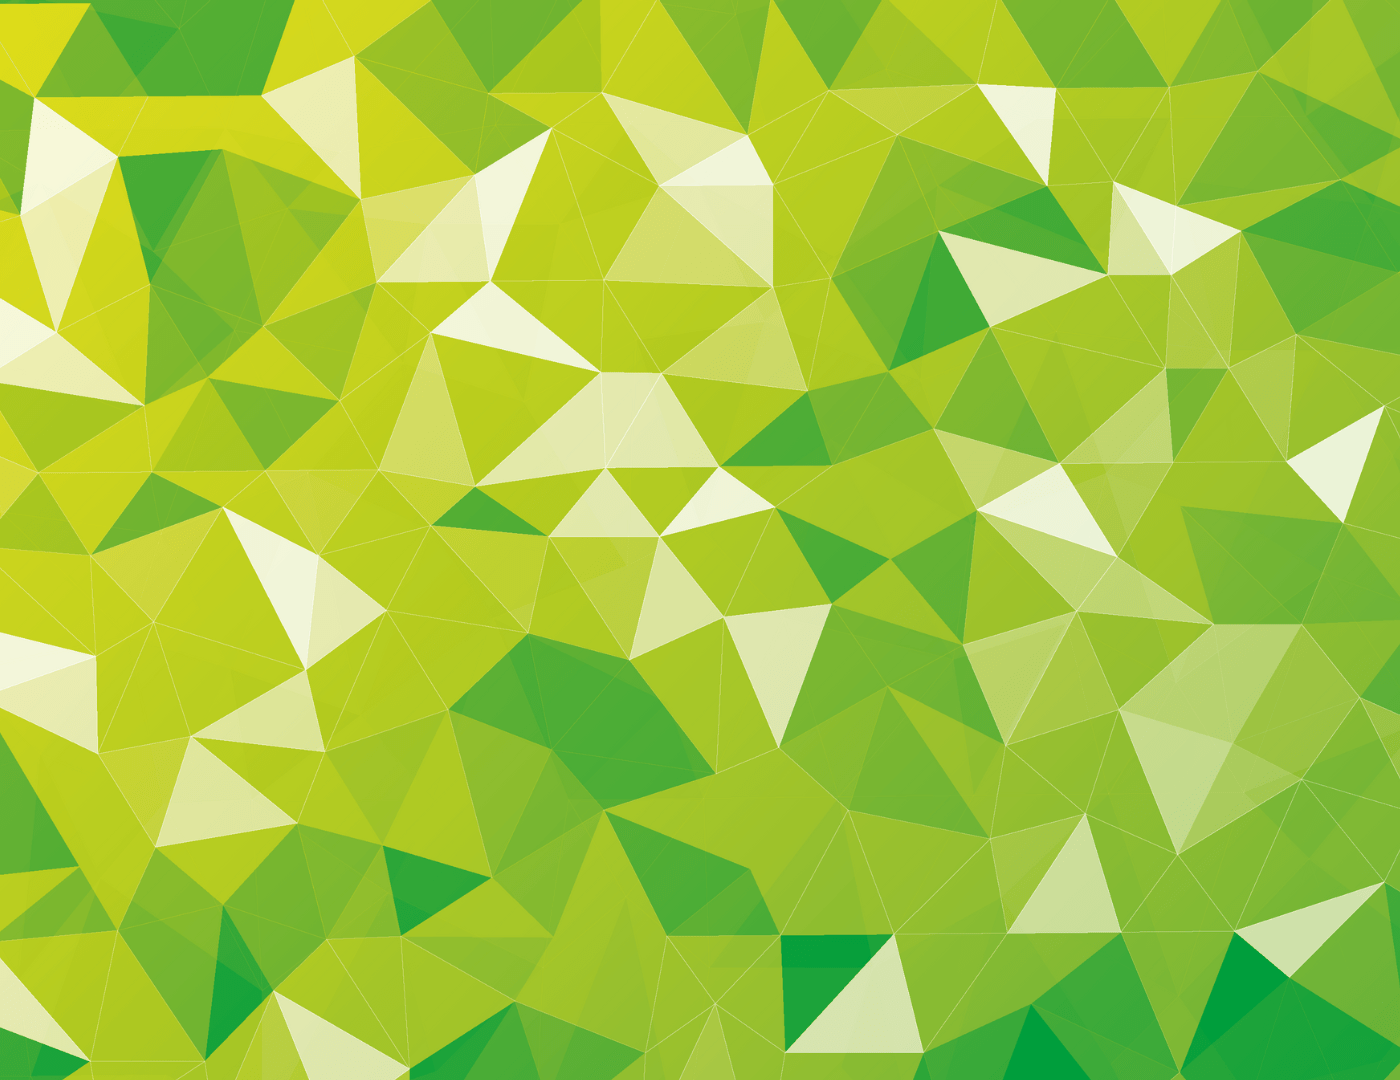 Green Scrunched Paper Background